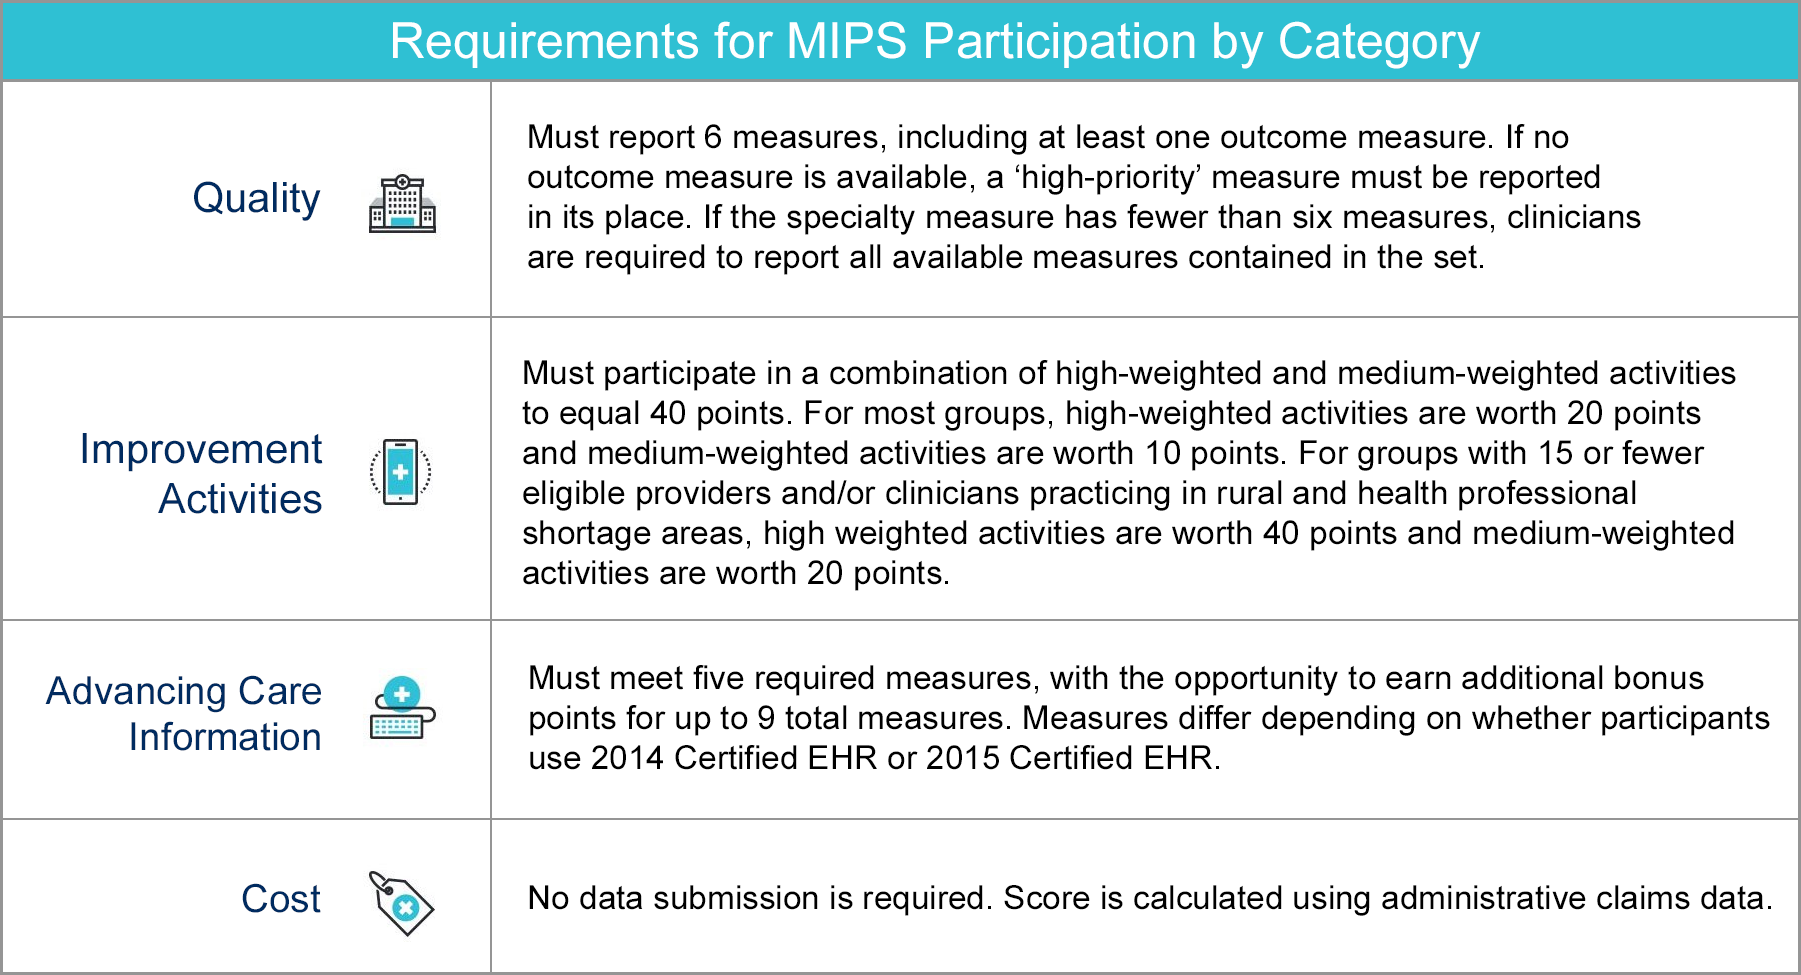 Requirements or MIPS Participation by Category